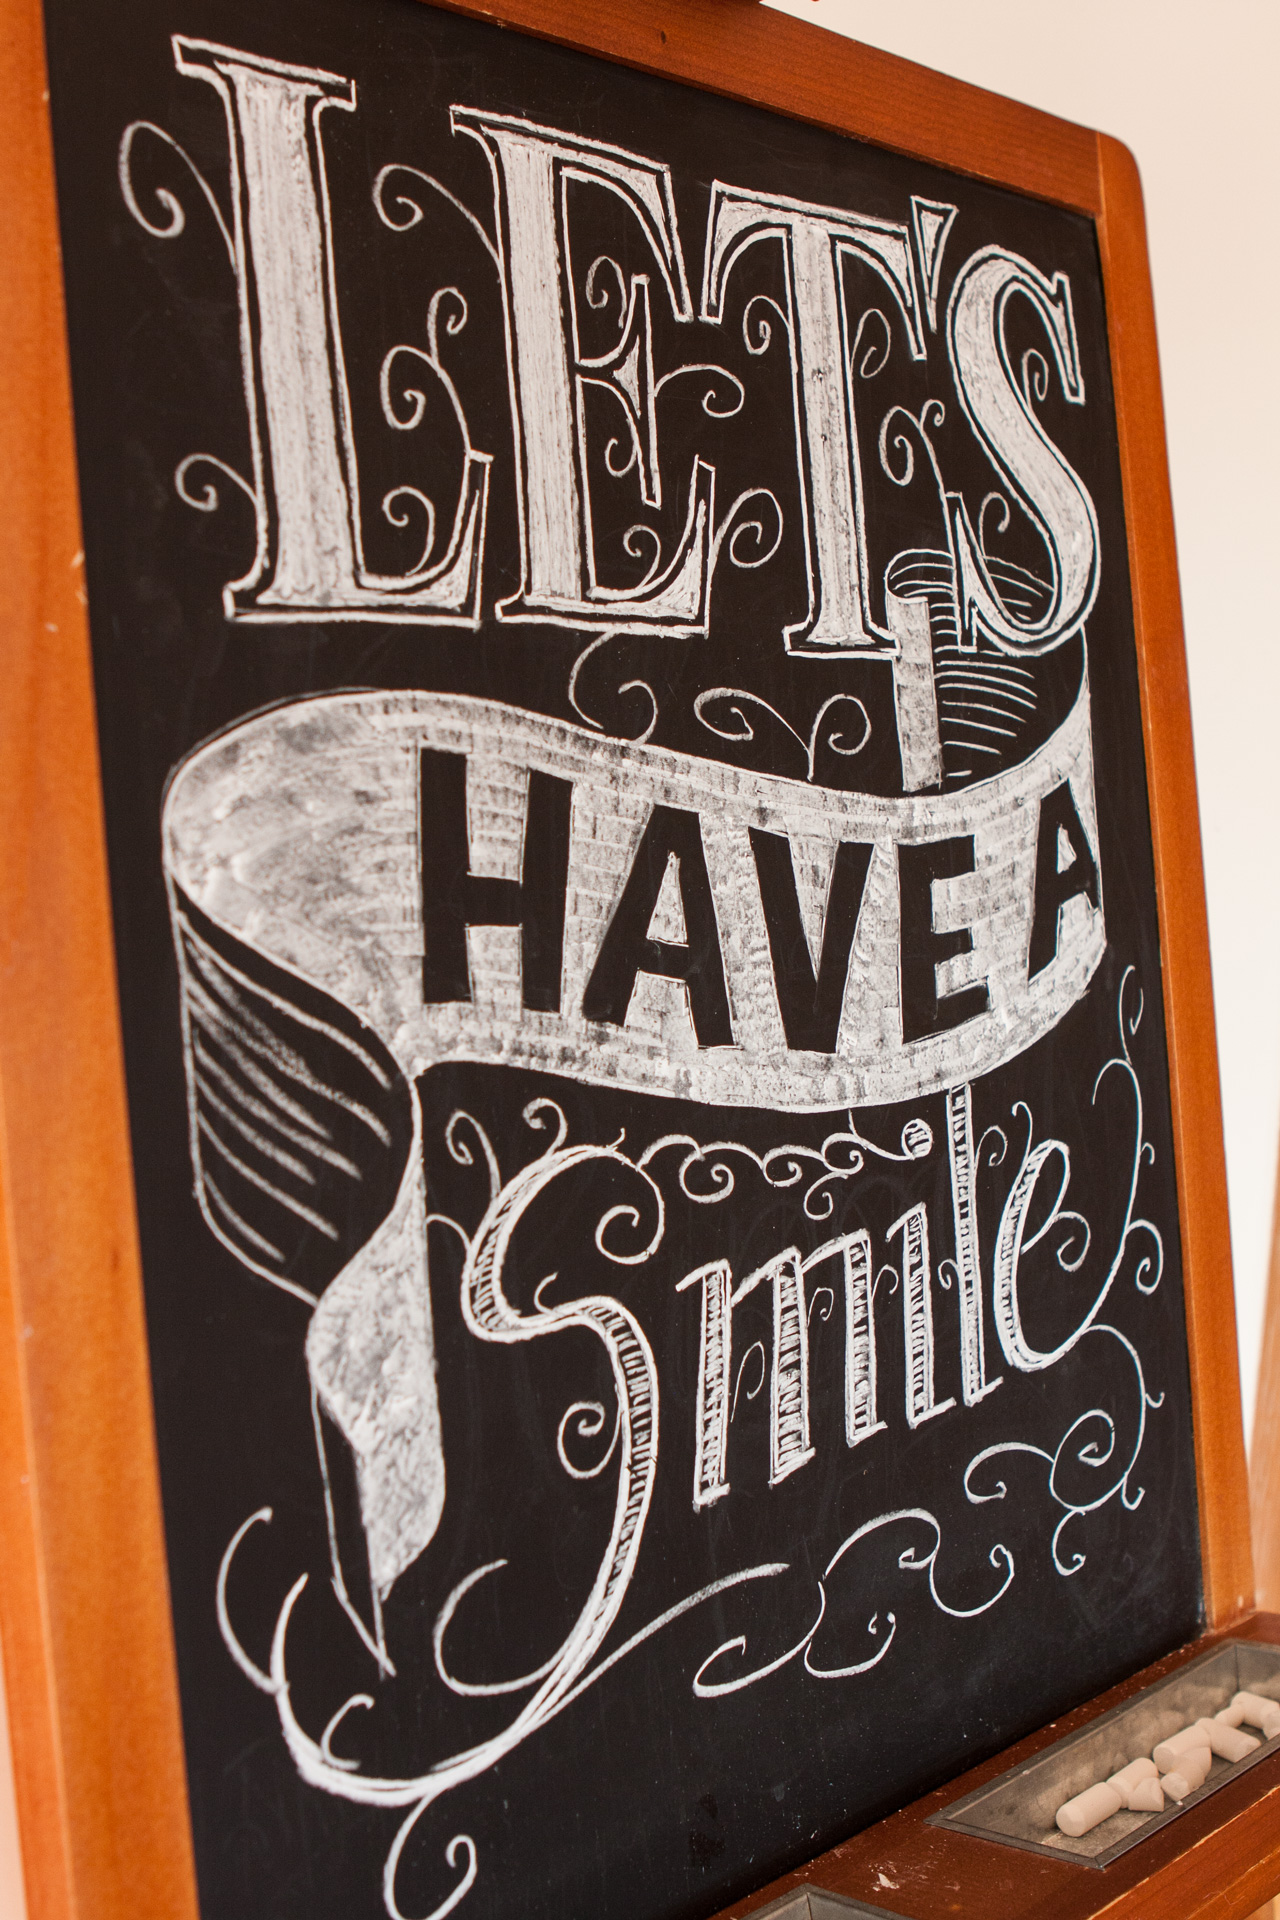 Let's have a Smile